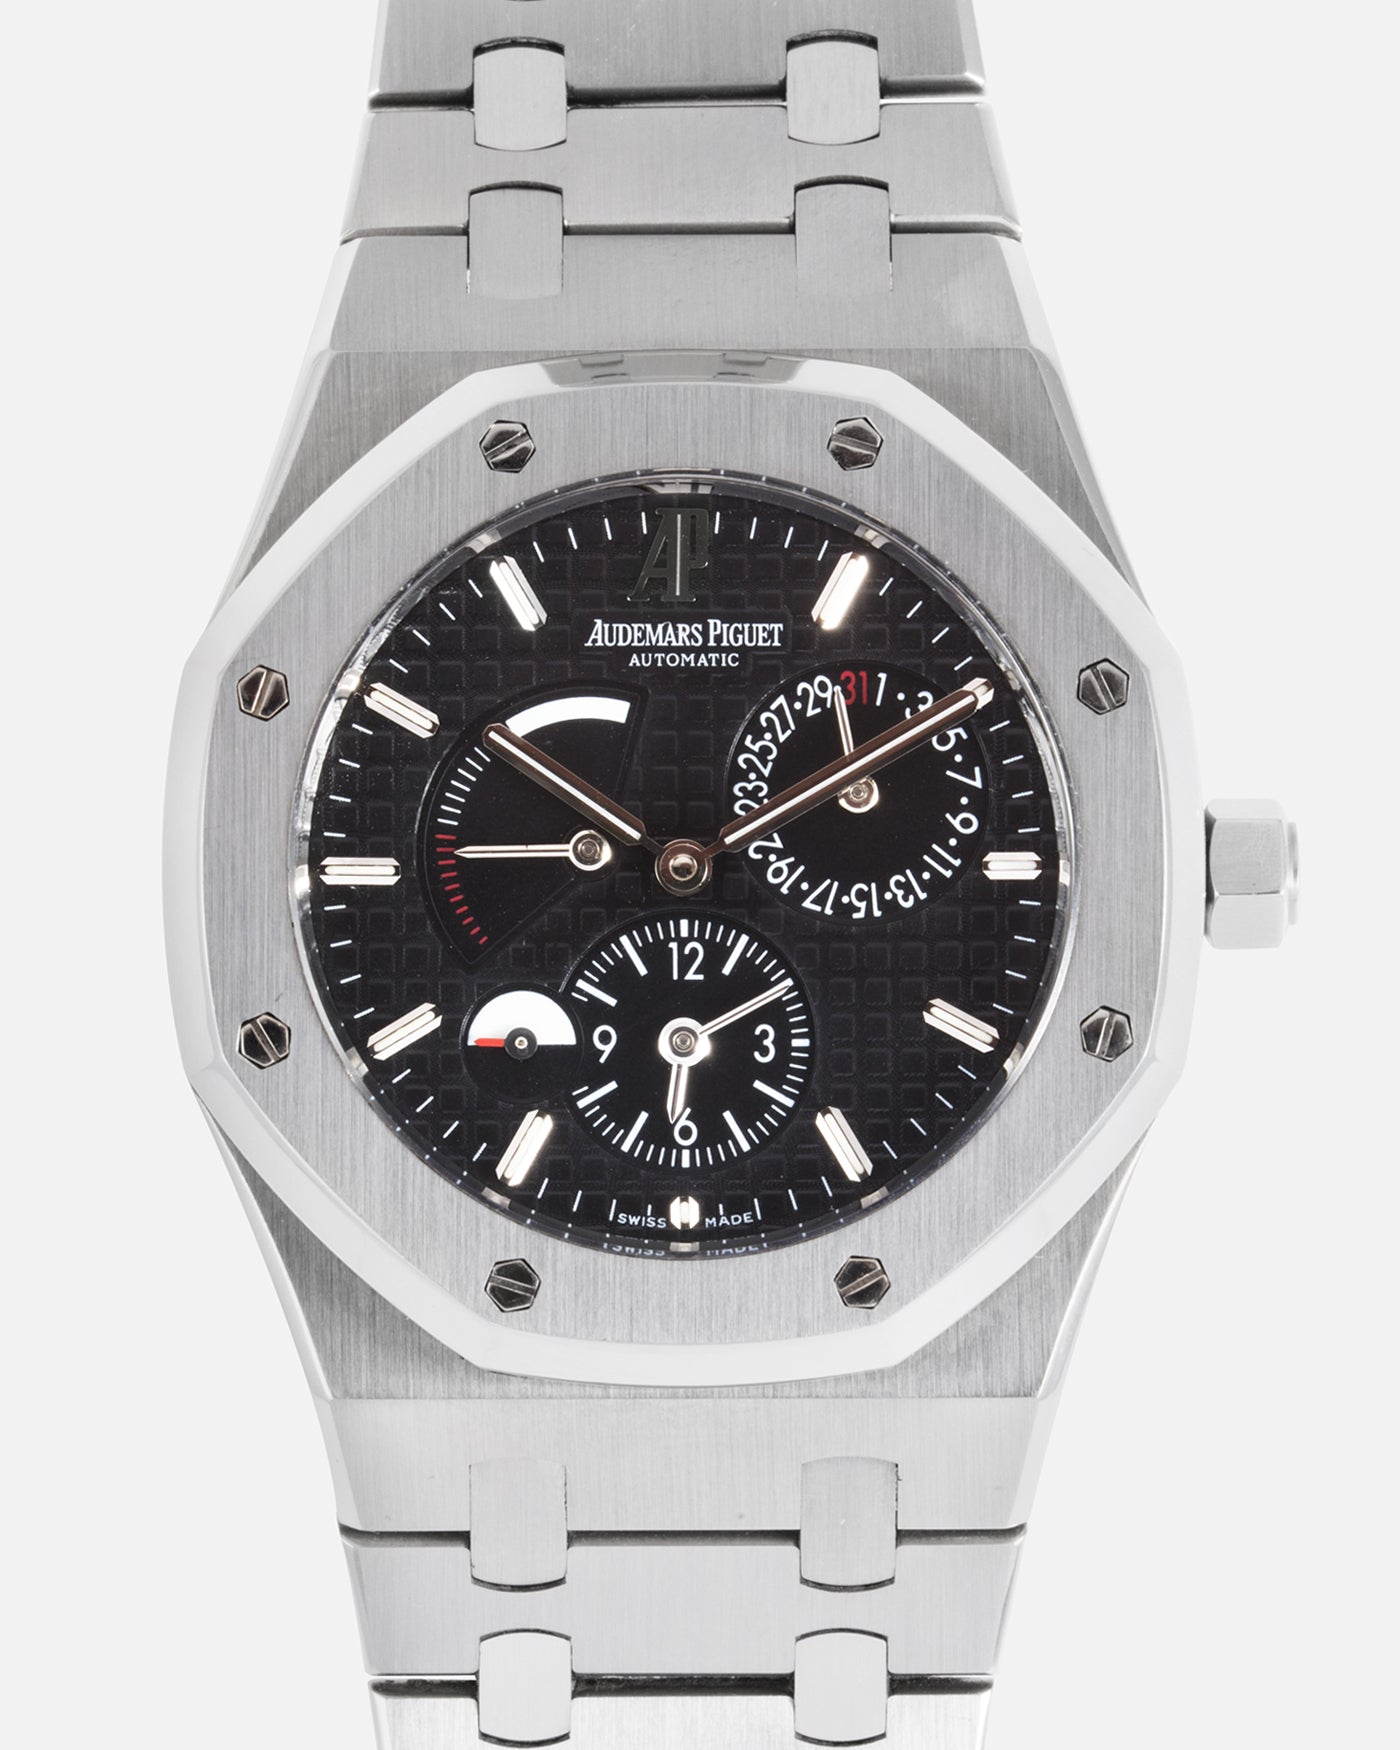 Audemars Piguet Royal Oak Dual Time 26120ST